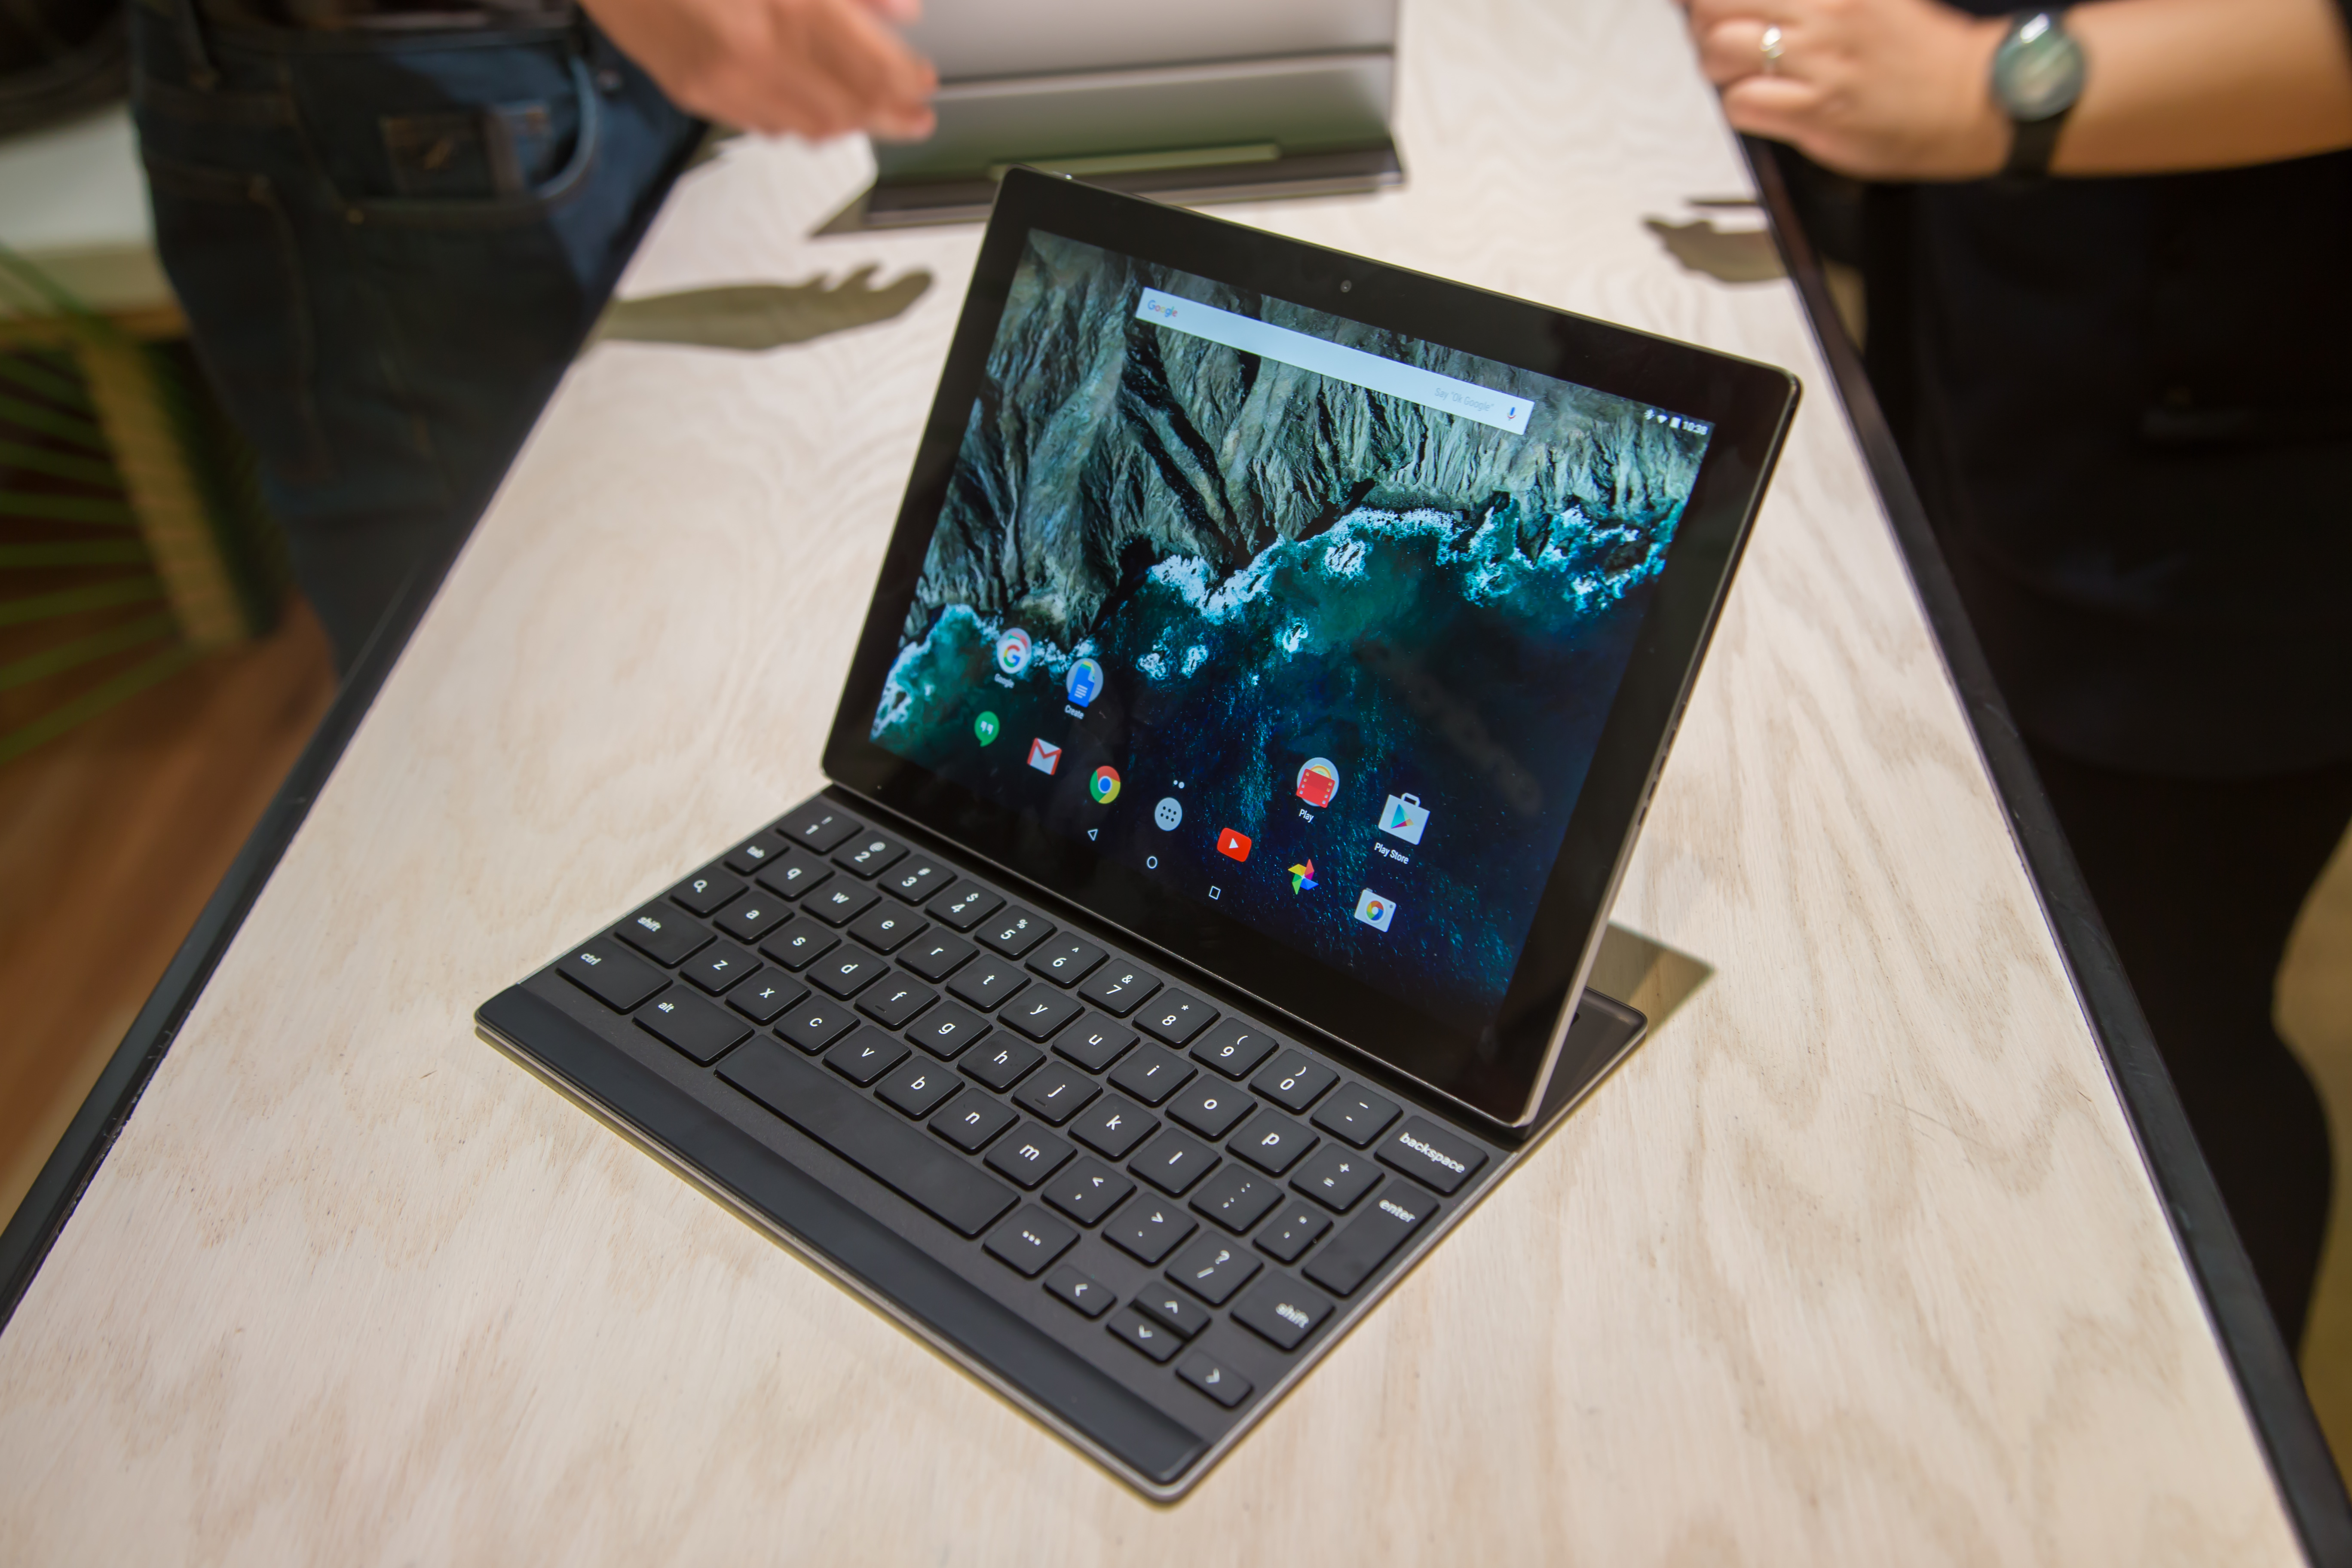 Google Pixel C Hands-on: A Well-built But Clunky